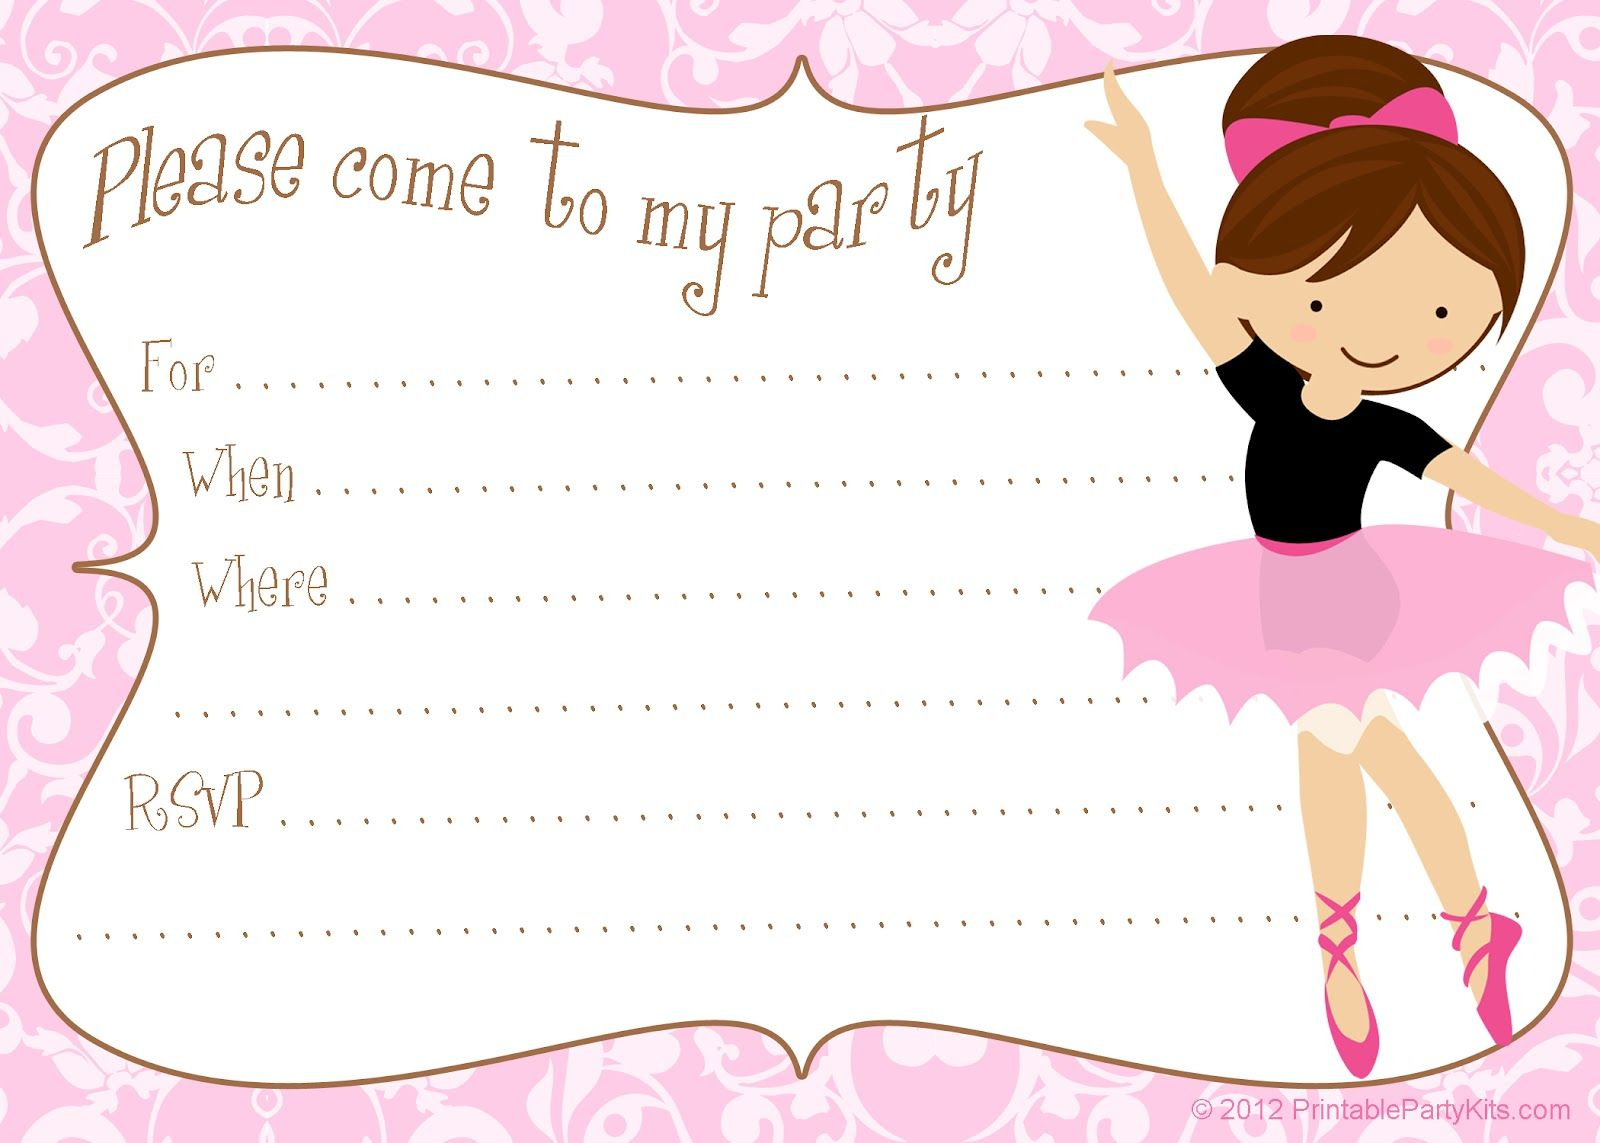 Printable Free Diy Ballerina Party Invitations | Party Printables - Free Printable Ballerina Birthday Invitations